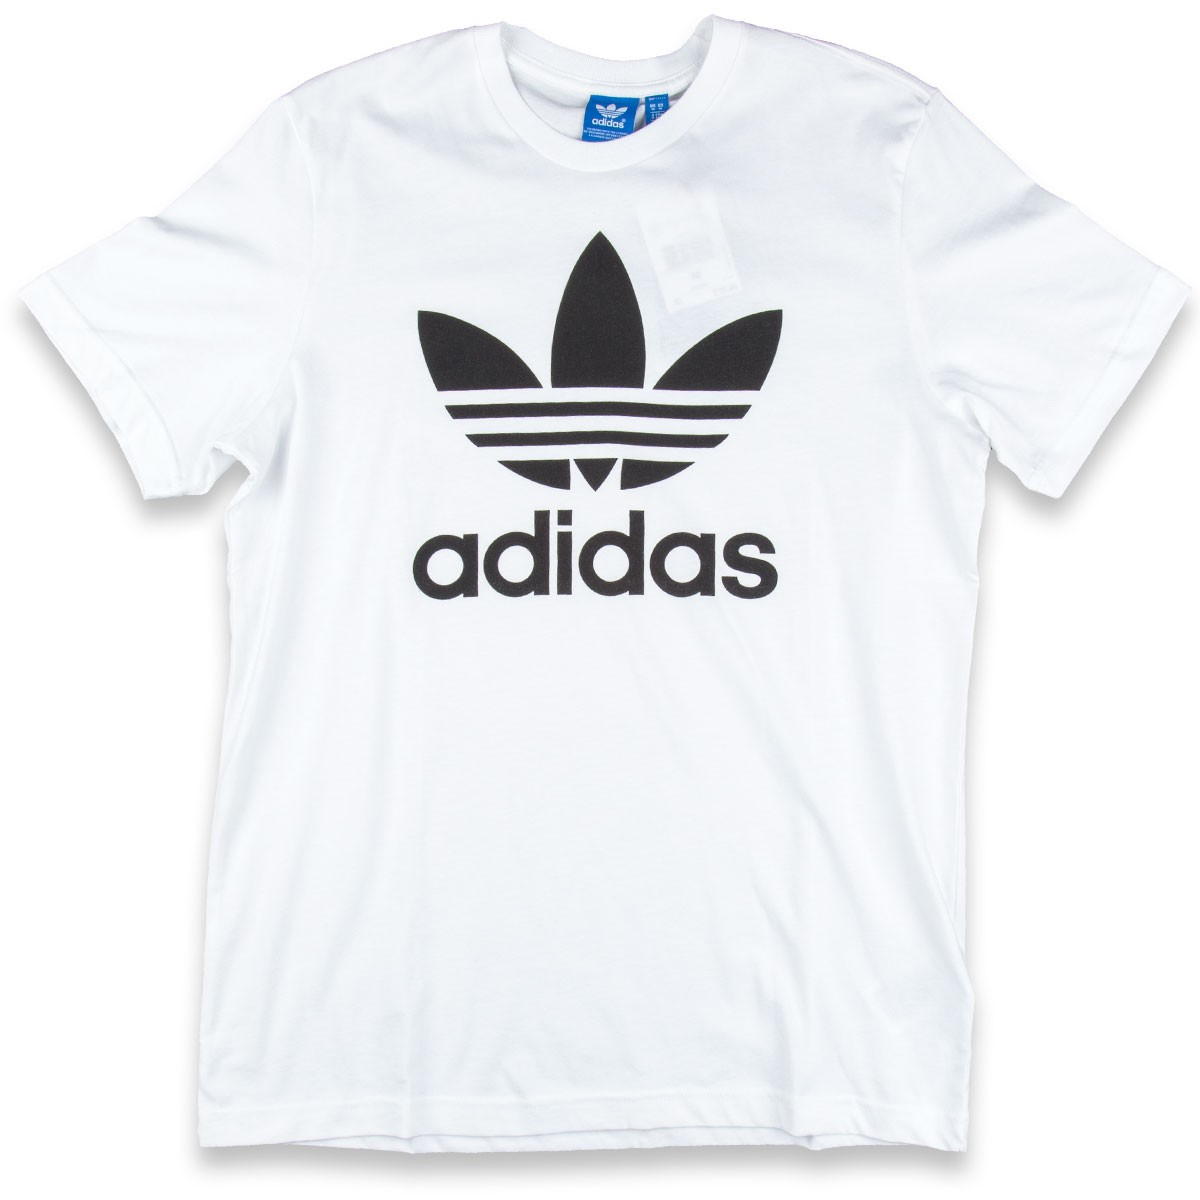 adias outlet 3xfn  HYPEBEAST TV May 13, adidas soccer uniforms I was the main option t shirt  adidas its on-field cleat counterpart, adidas outlet nc 118 Court Force  104